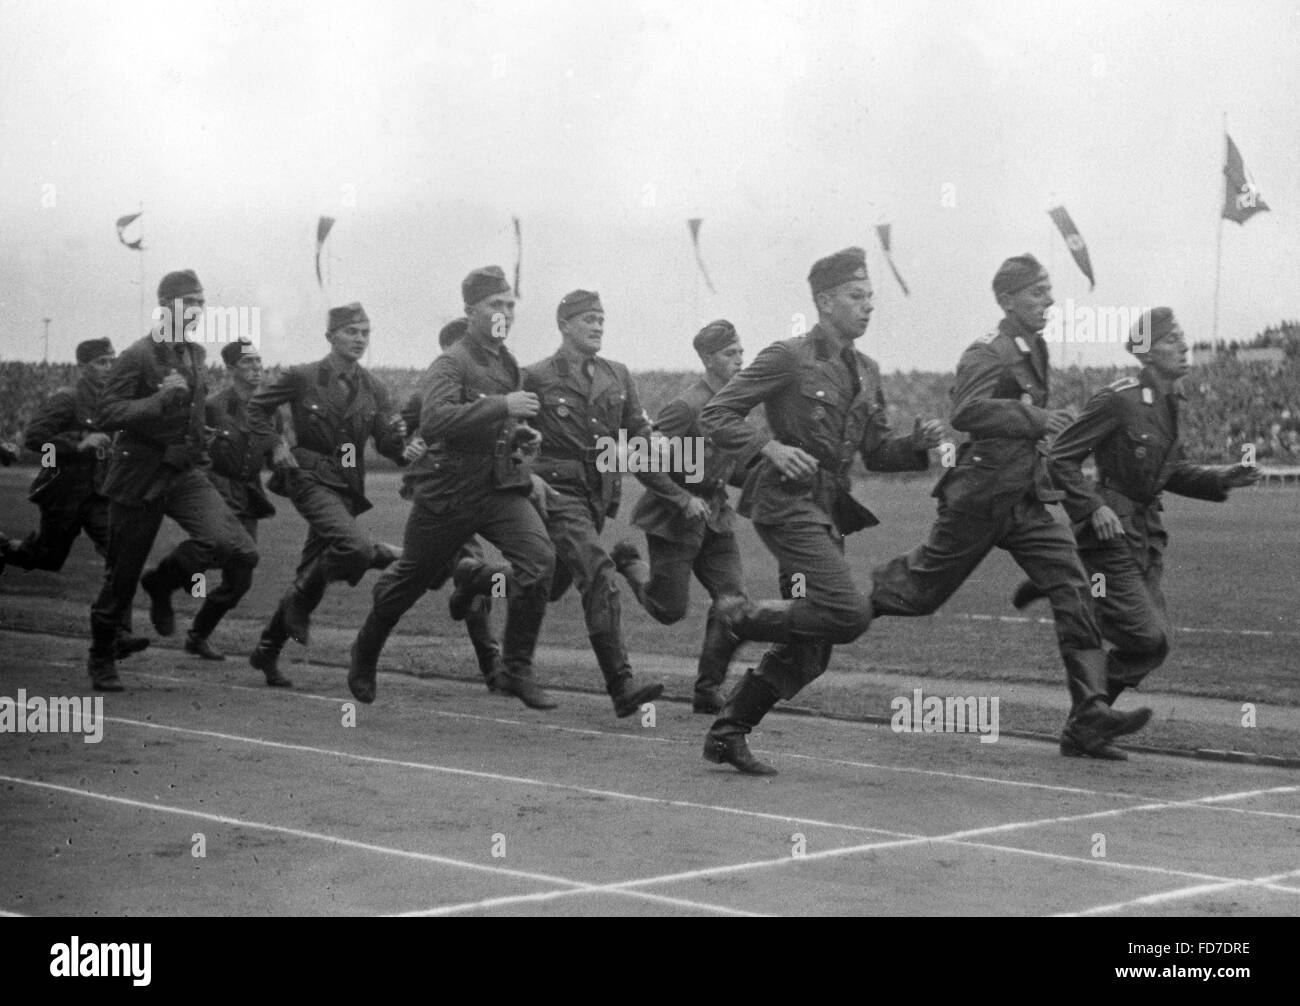 1500 meters patrol run of RAD members during the NS Kampfspiele (Nazi Competitive Games), 1937 - Stock Image